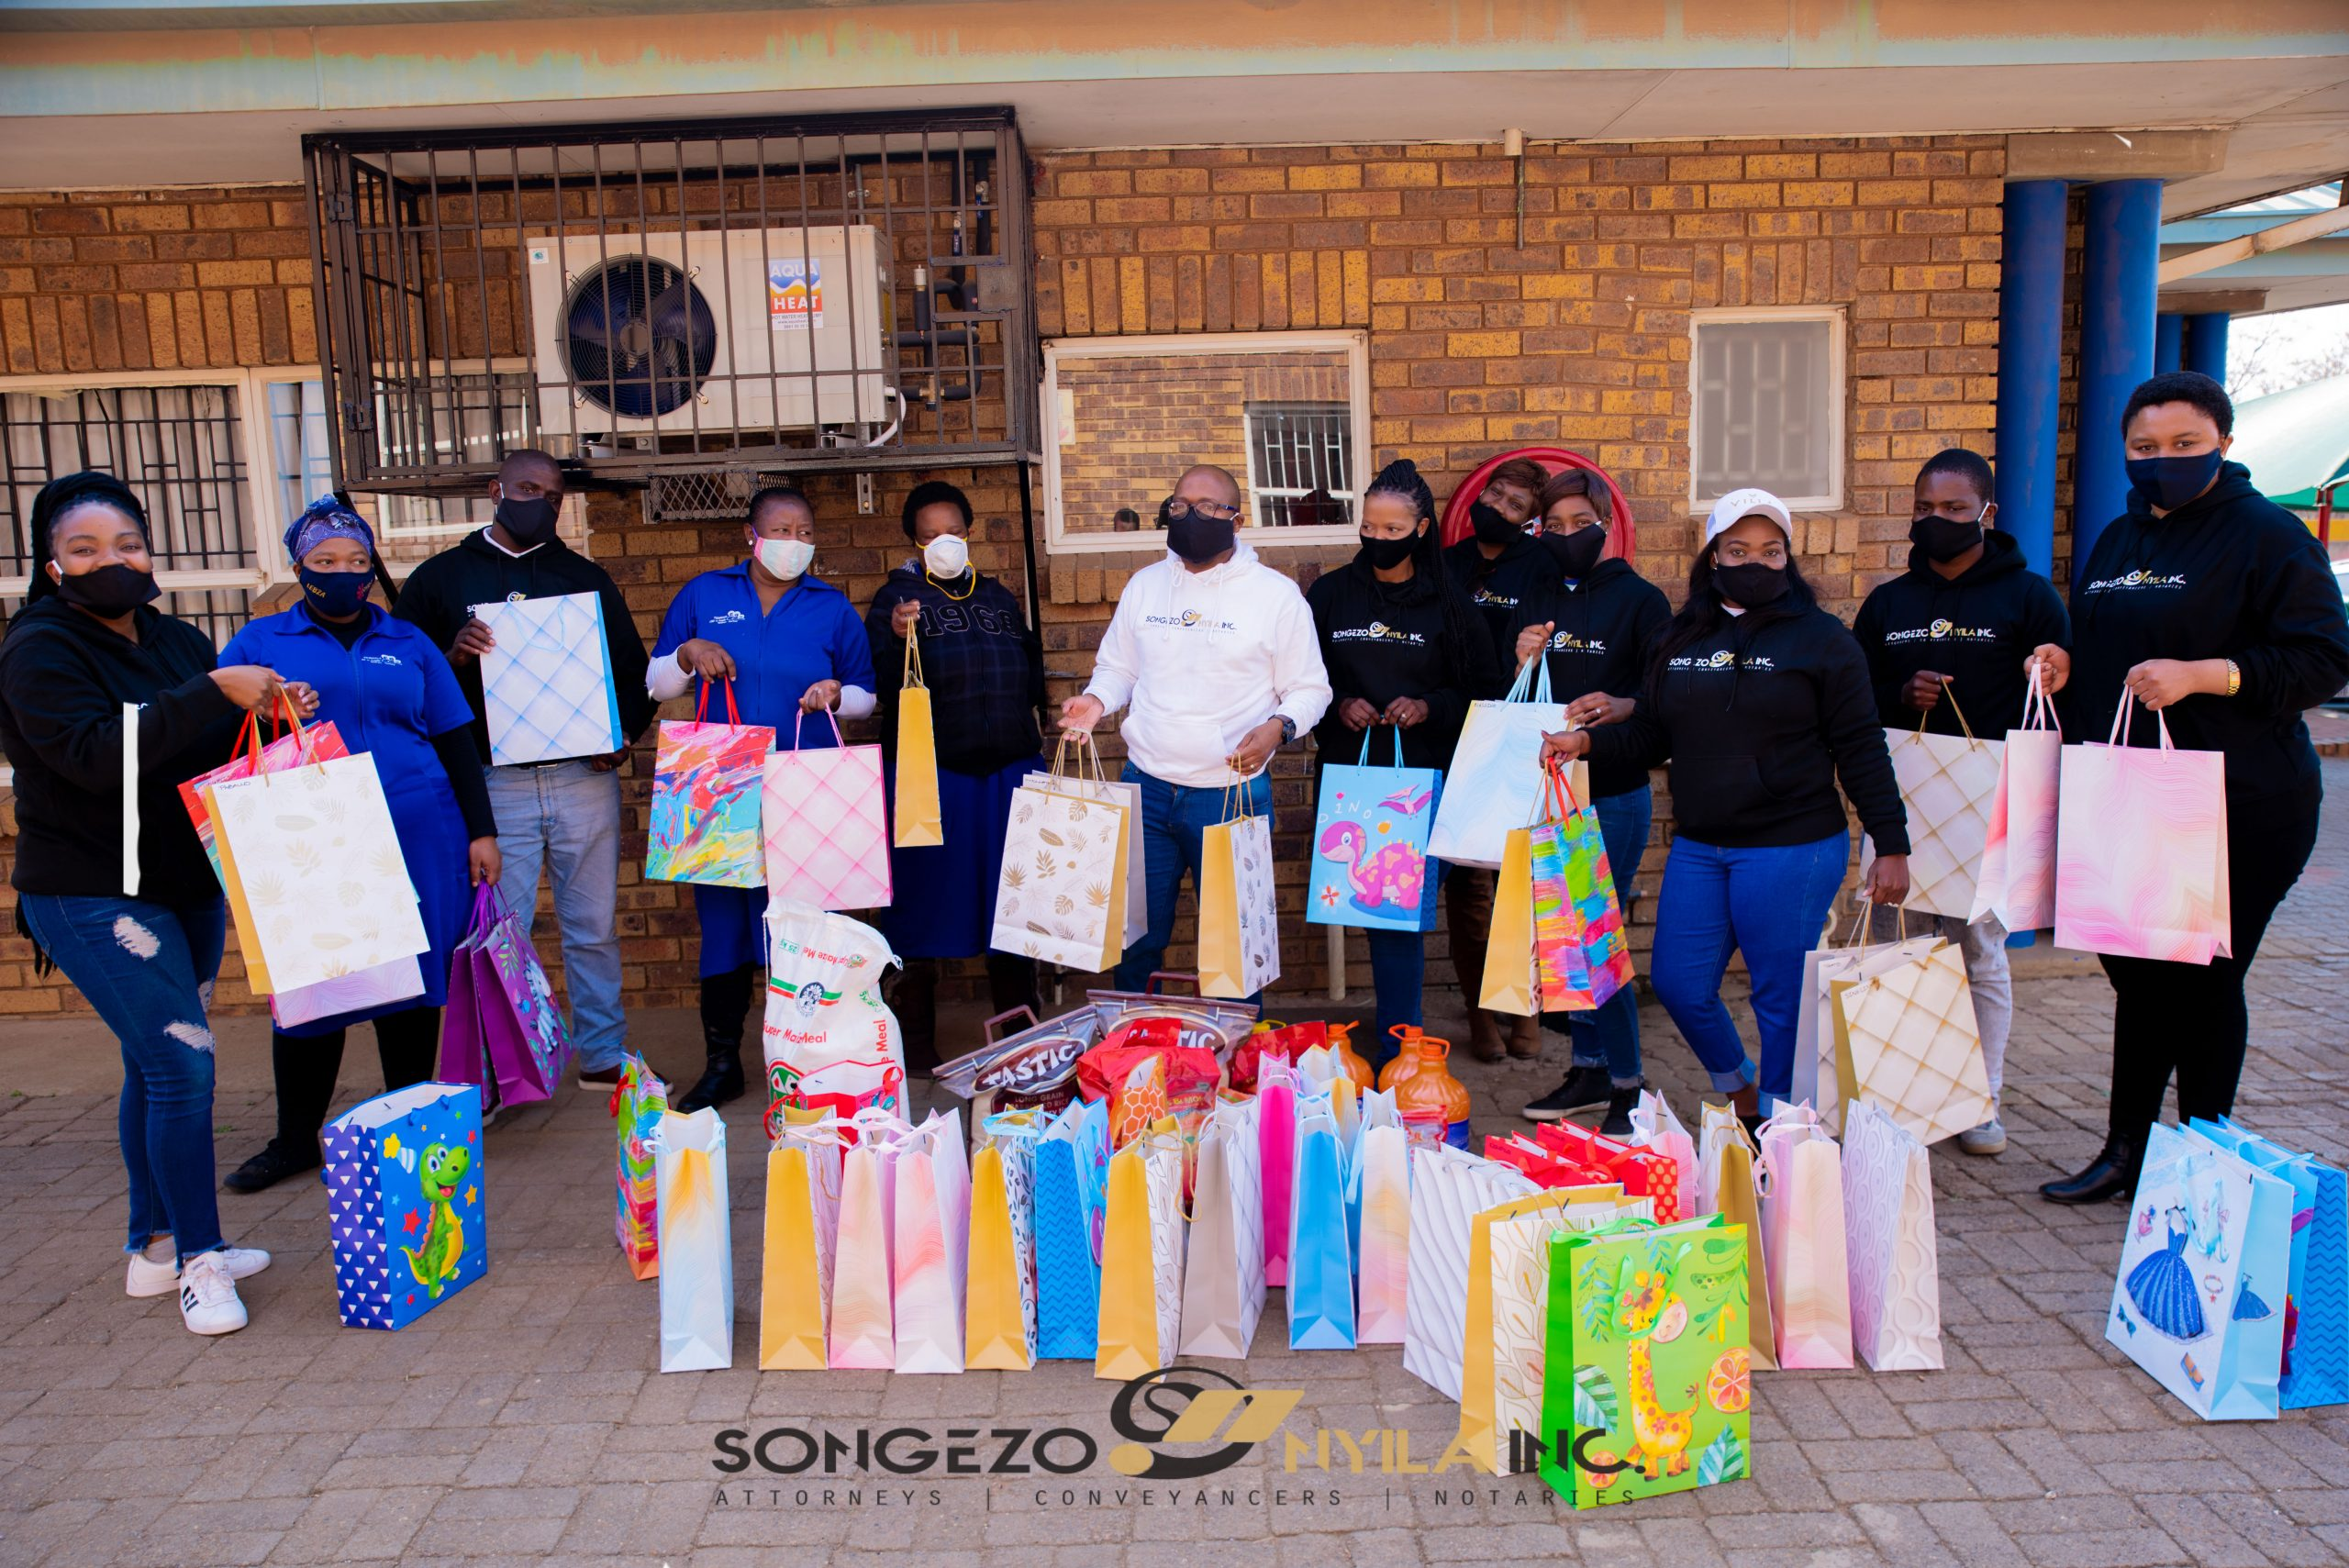 Songezo Nyila Inc Mandela Day 2020, Tembisa Childrens Welfare